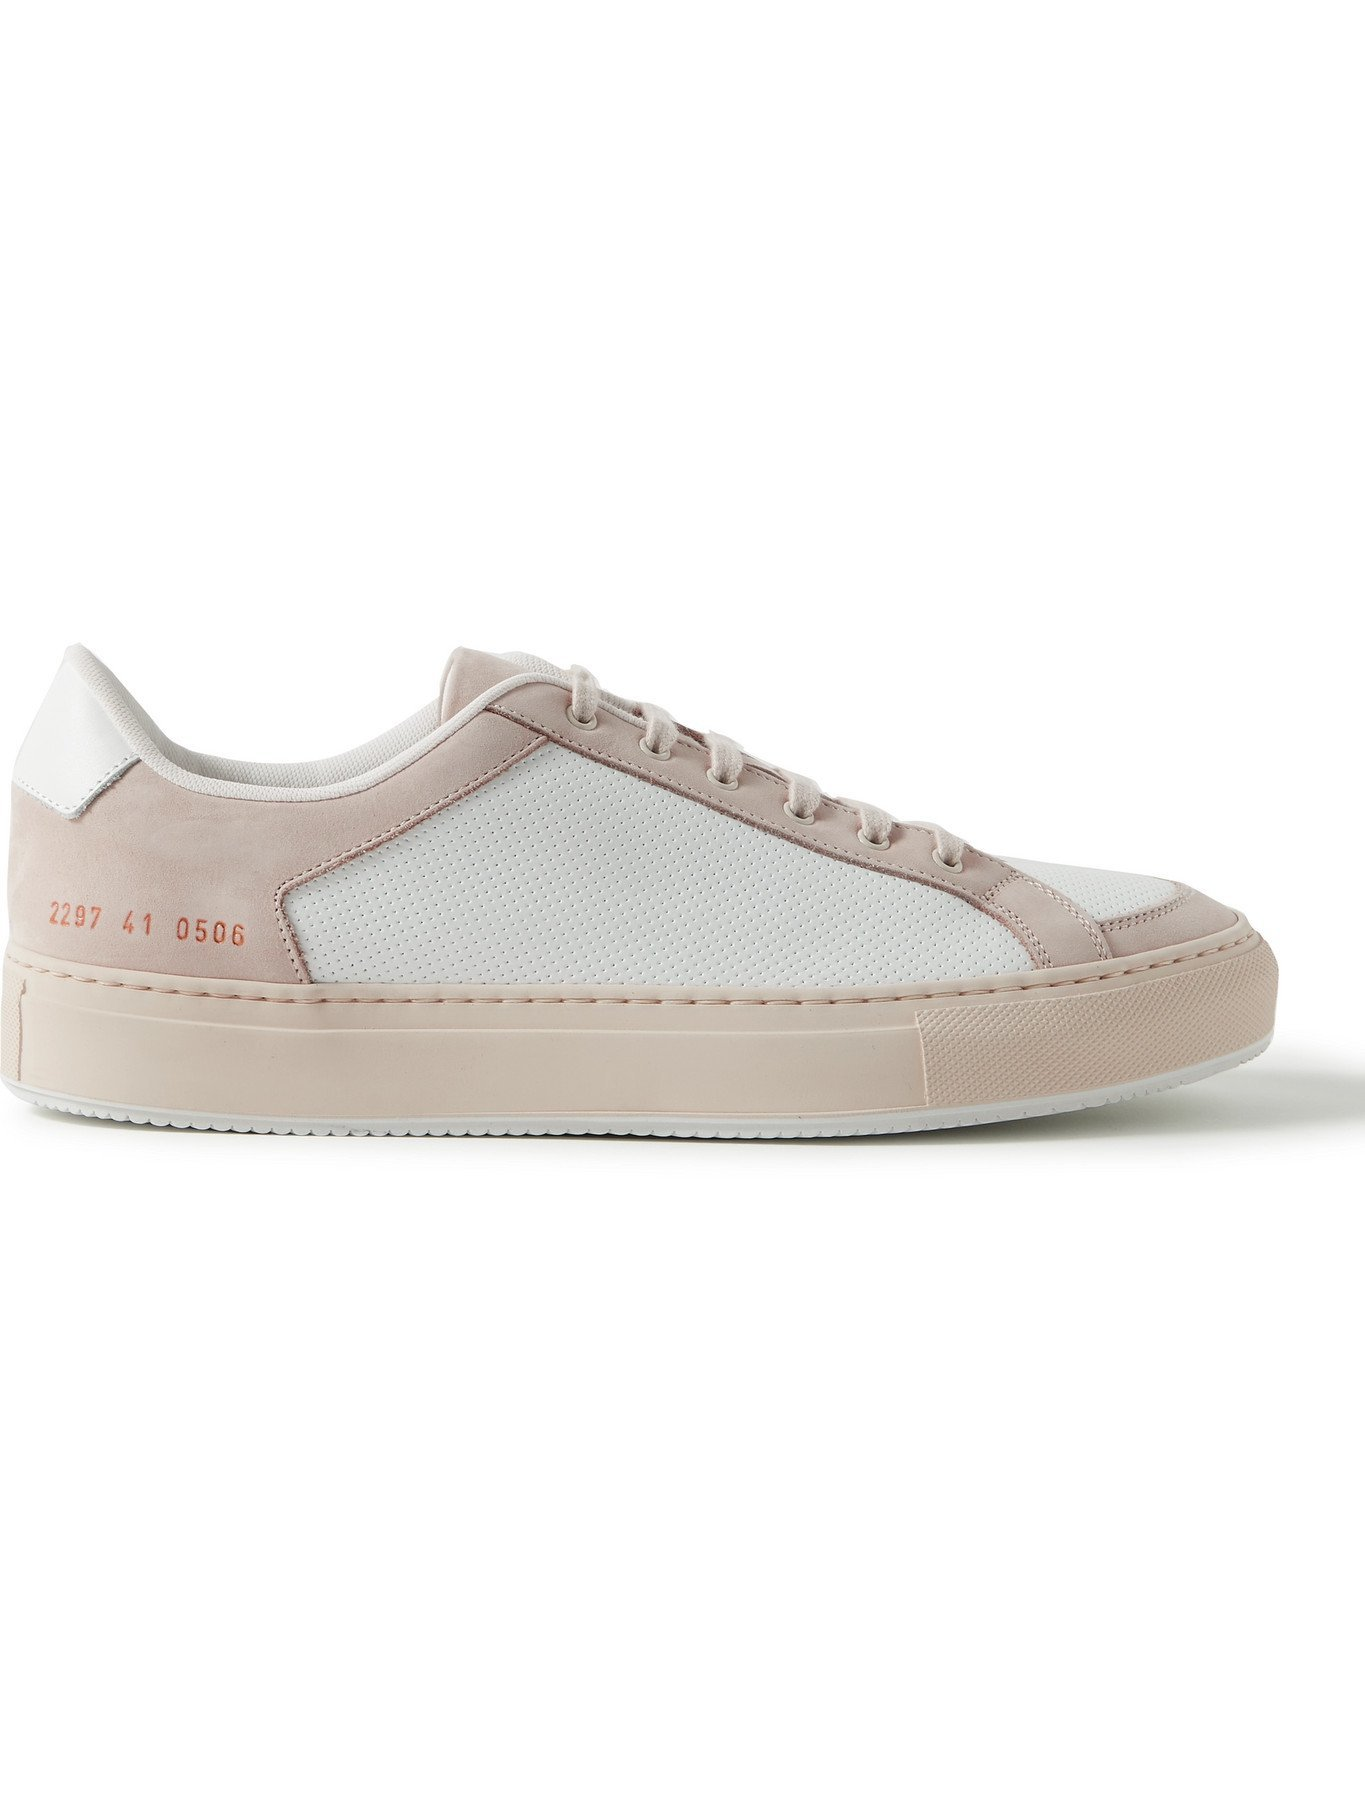 Photo: COMMON PROJECTS - Retro '70s Nubuck-Trimmed Perforated Leather Sneakers - White